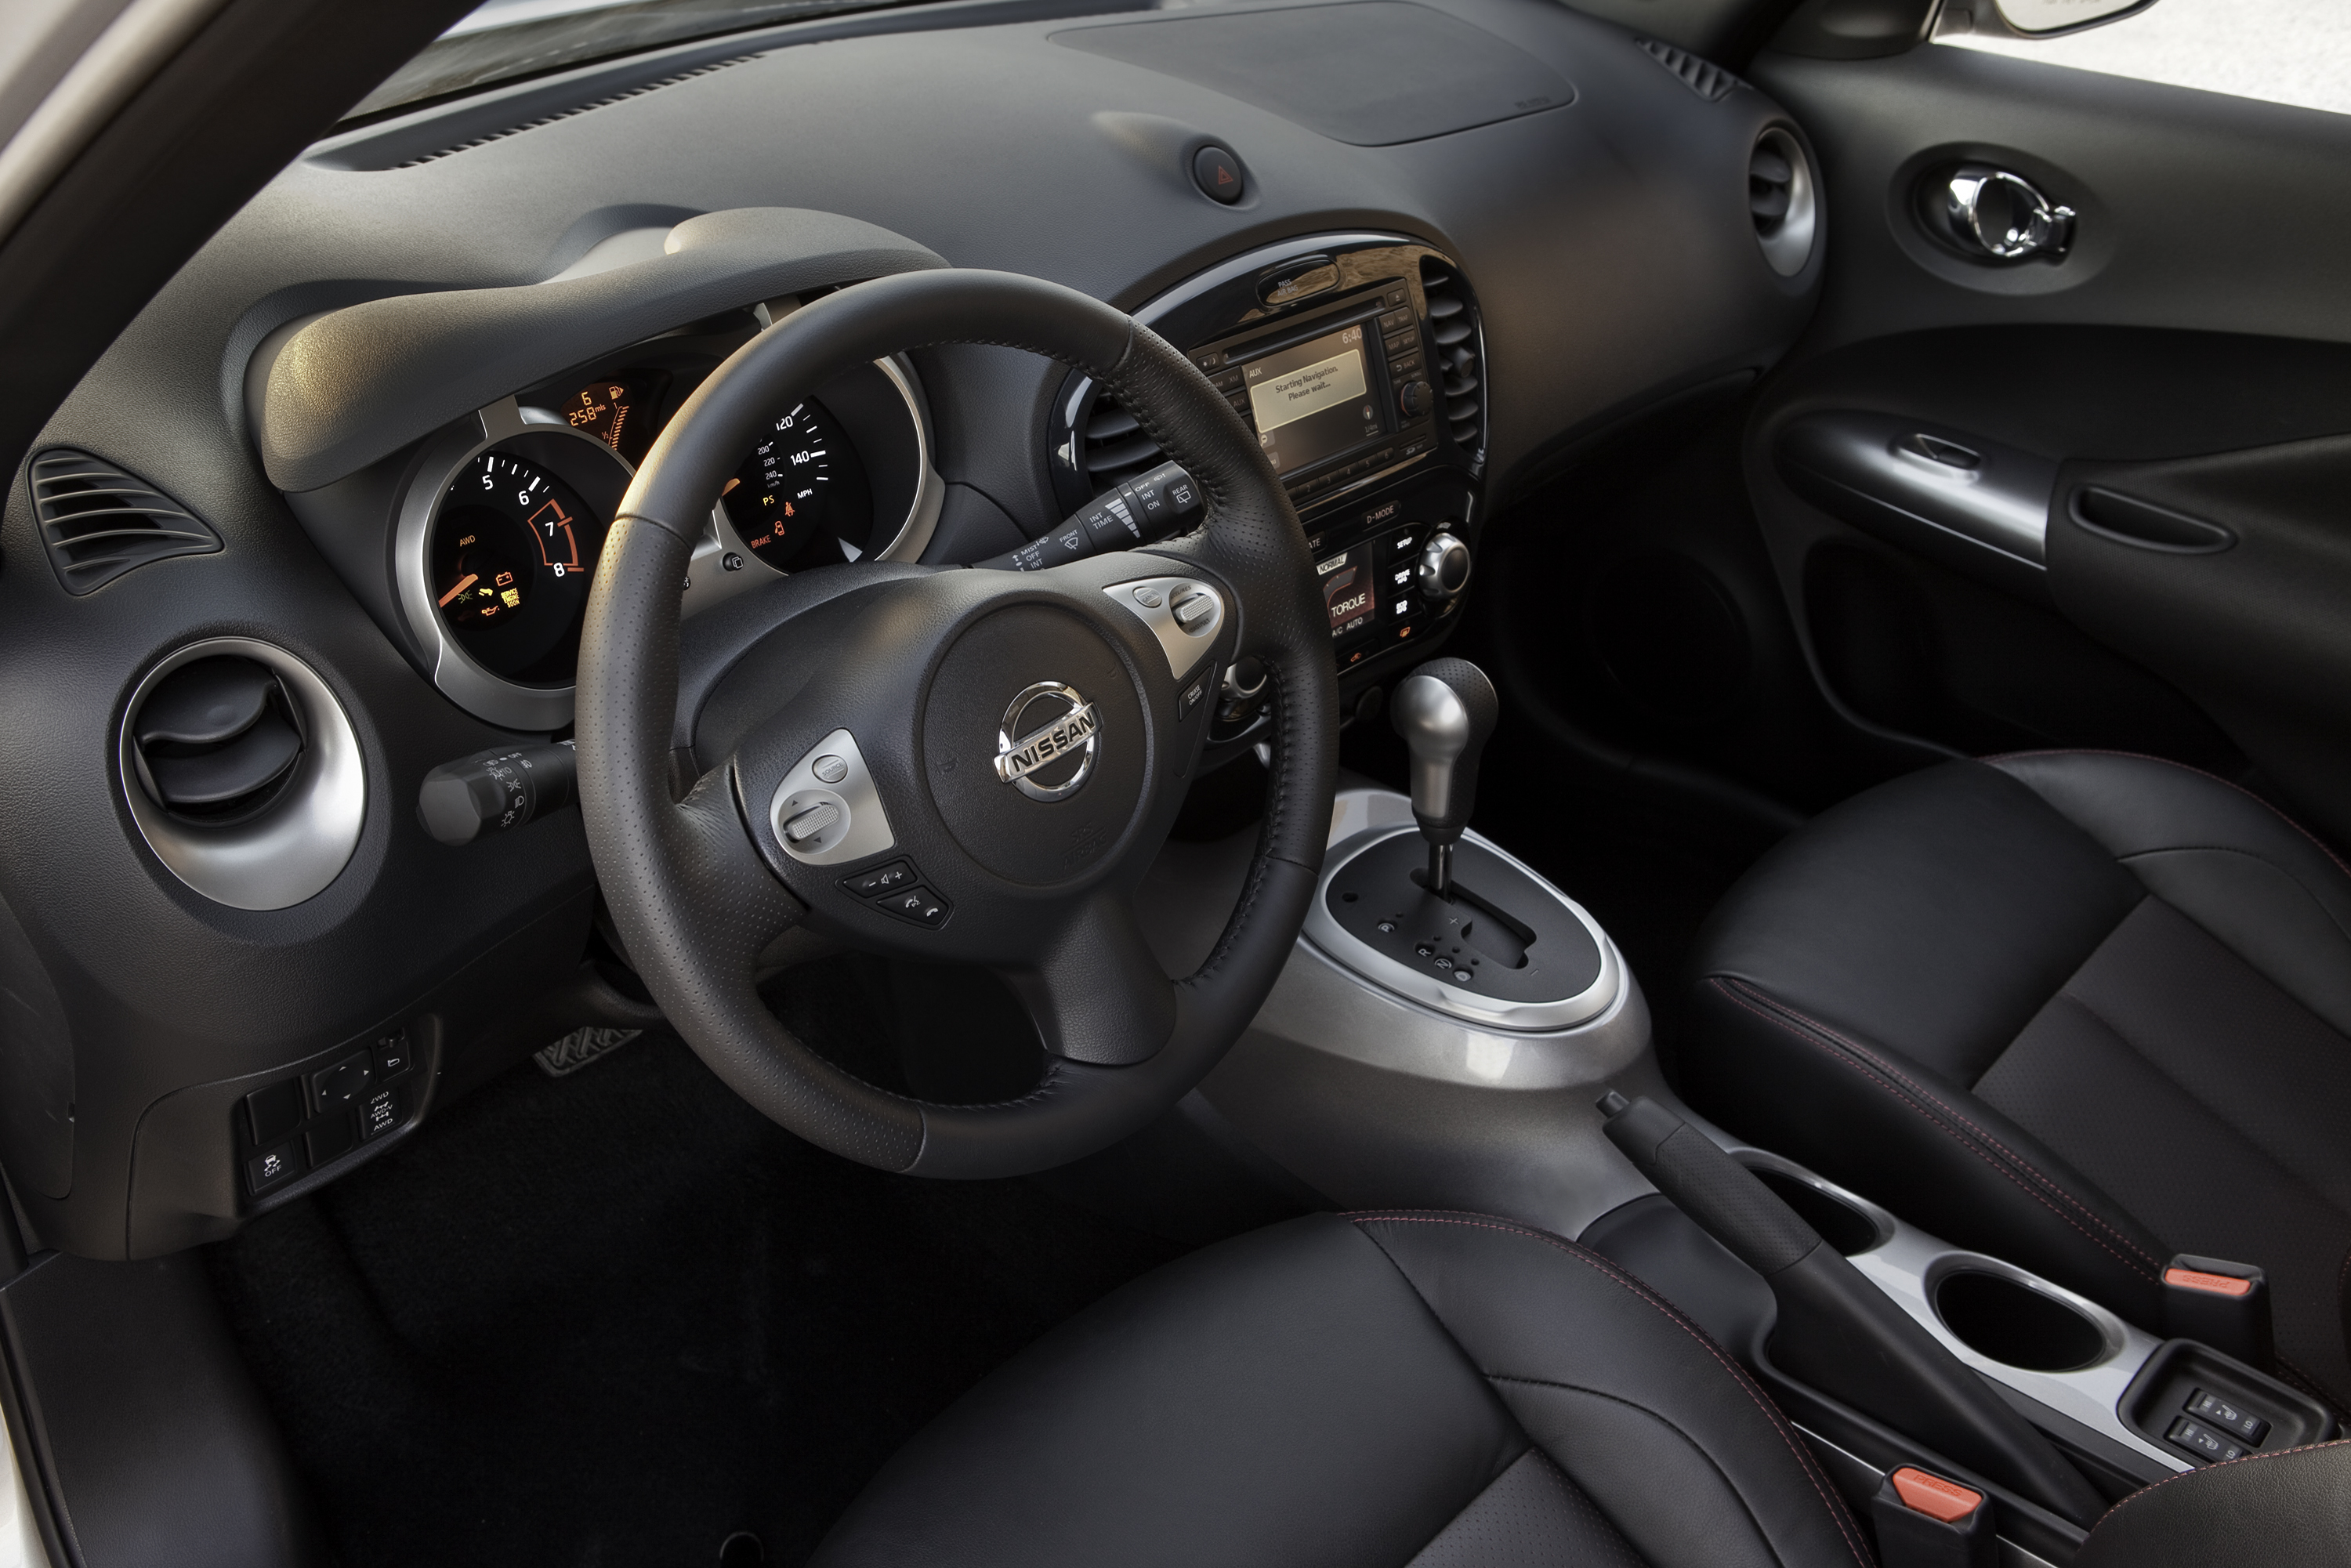 Mazda Cx 5 2015 Interior >> 2015 Nissan Juke - What is that thing? - Driver Dose Autoblog | Driver Dose Autoblog